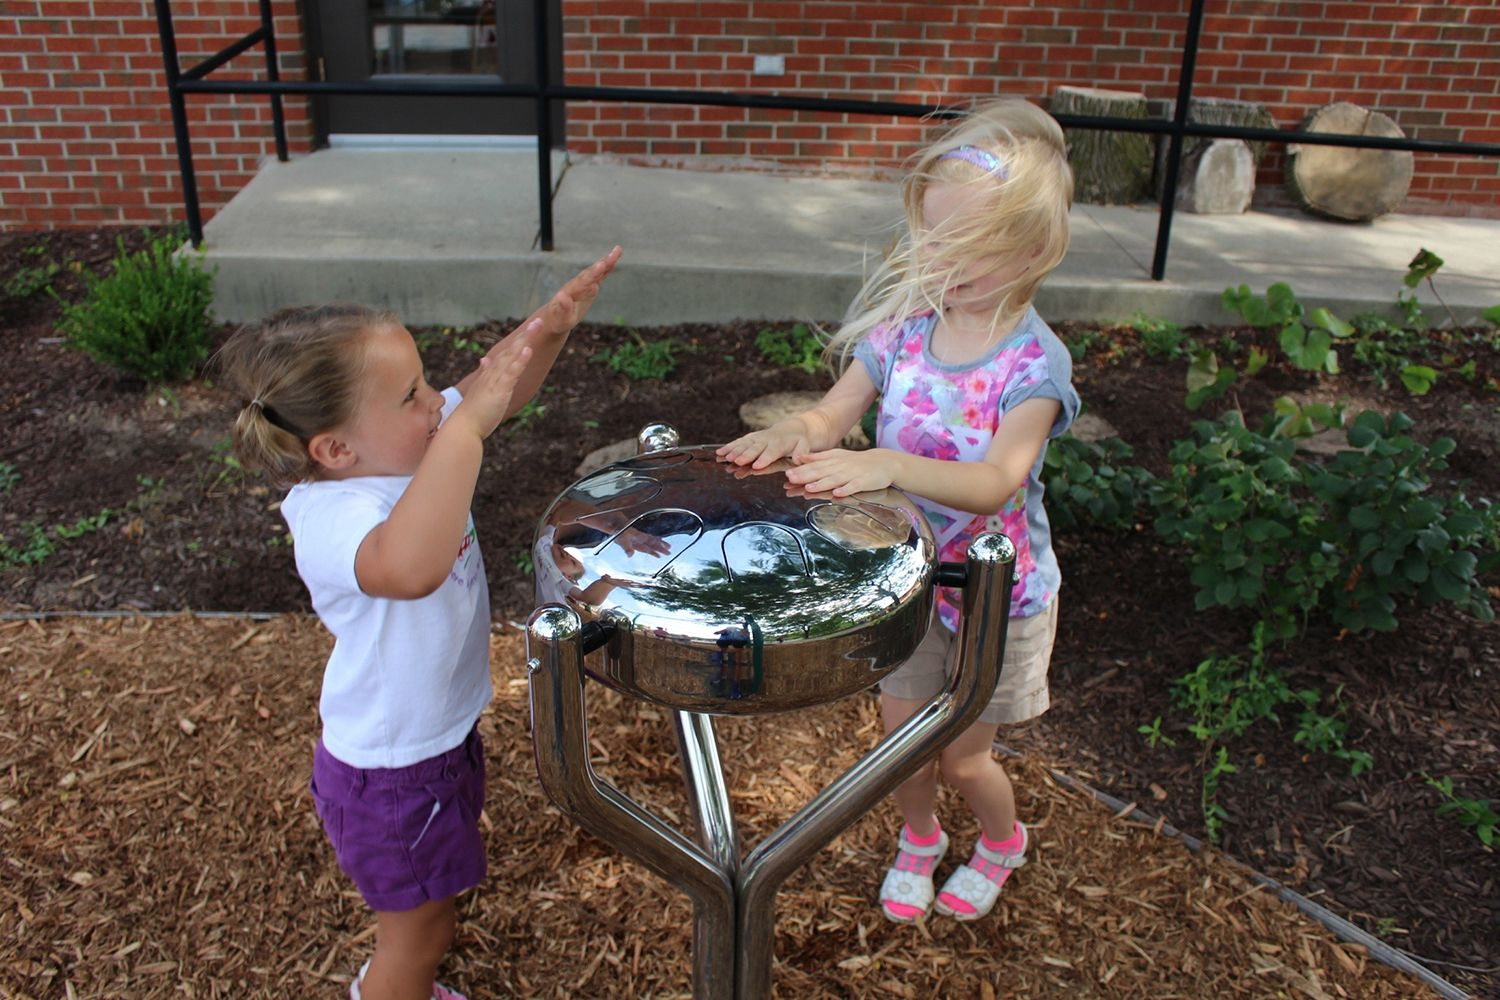 two little girls Playing Stainless Steel drum in playground